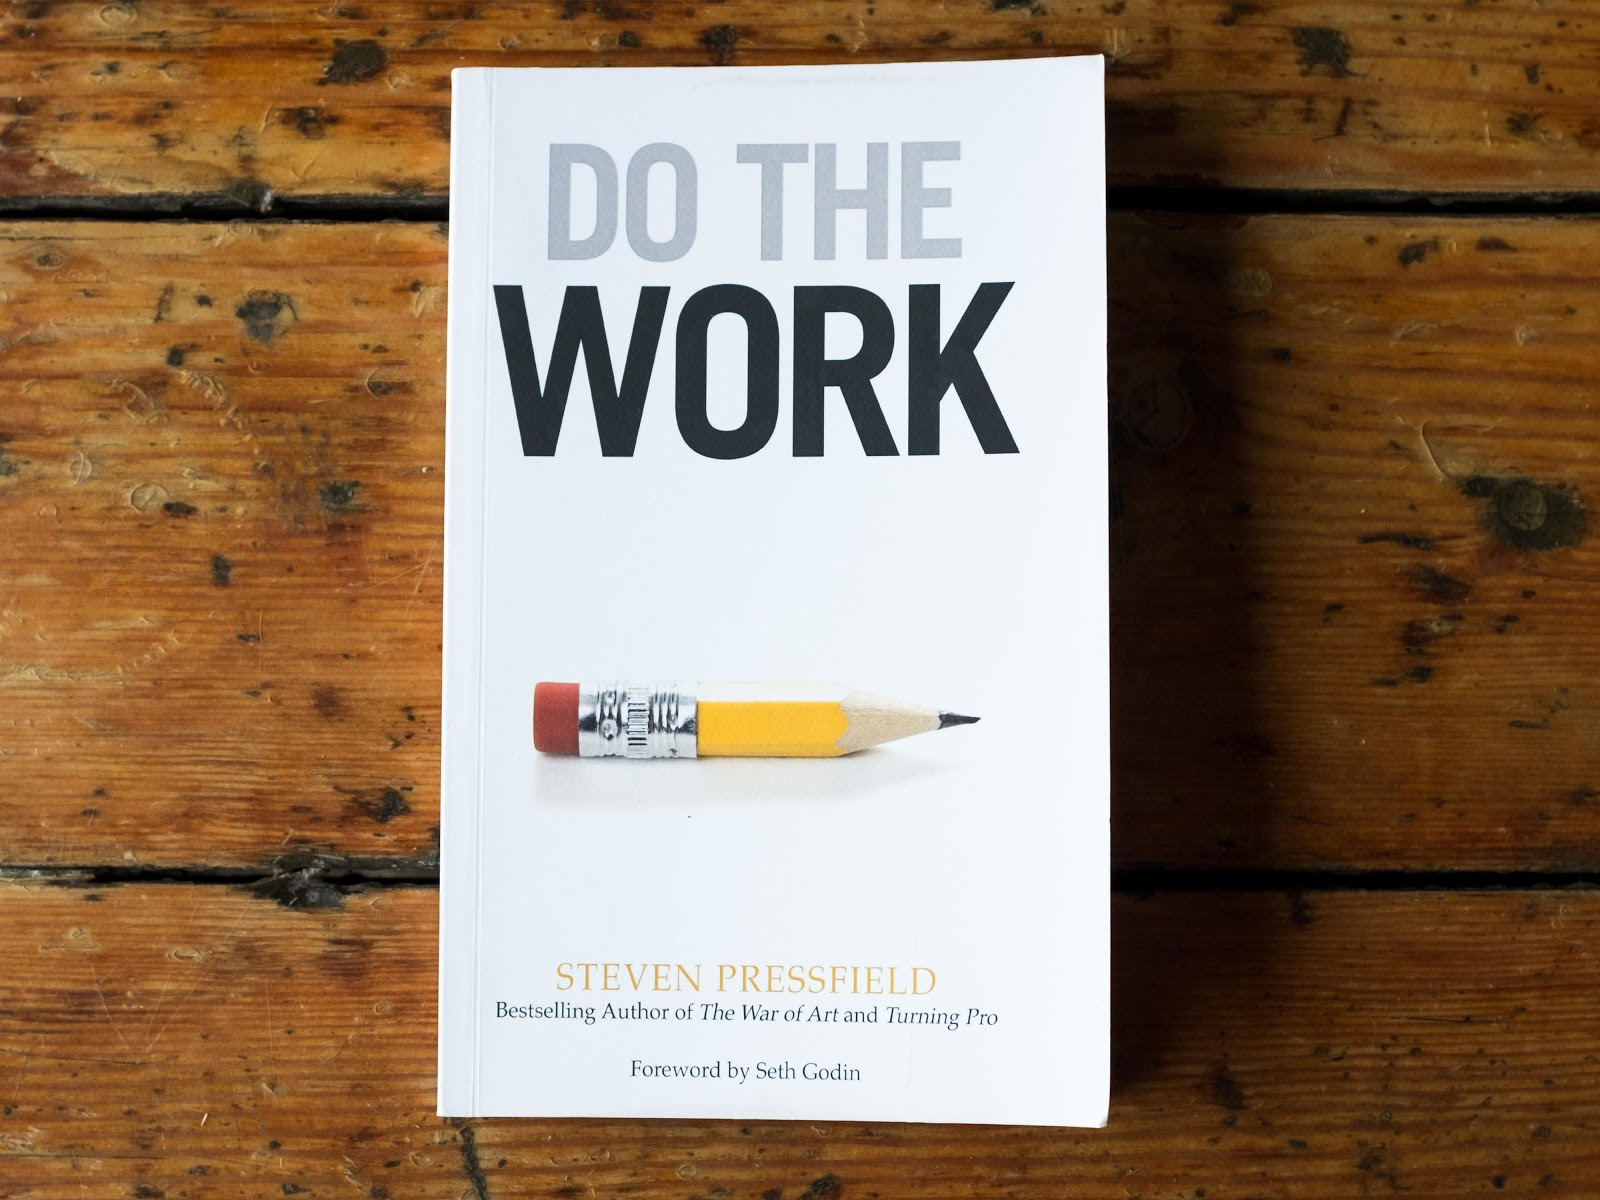 """The cover of Steven Pressfield's book """"Do the Work."""""""